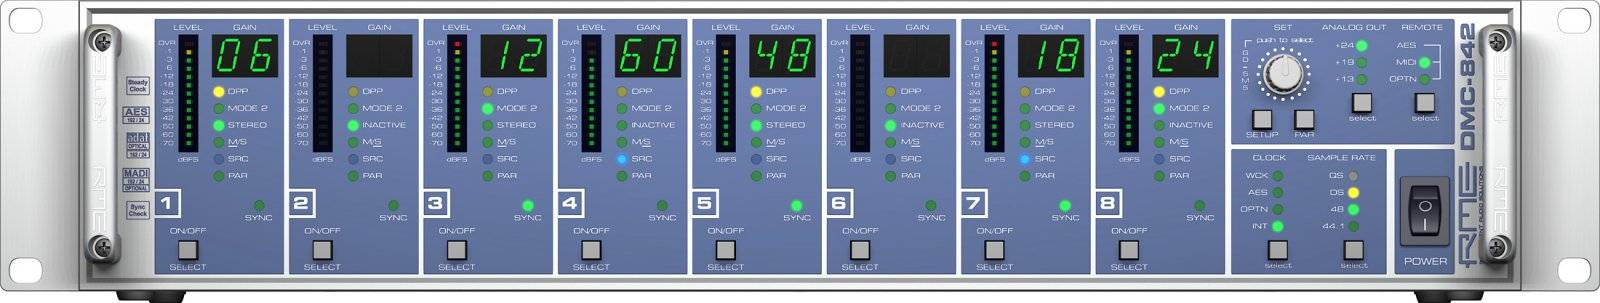 RME DMC842 8-Channel Digital Mic Preamp dmc-842 Product Image 2